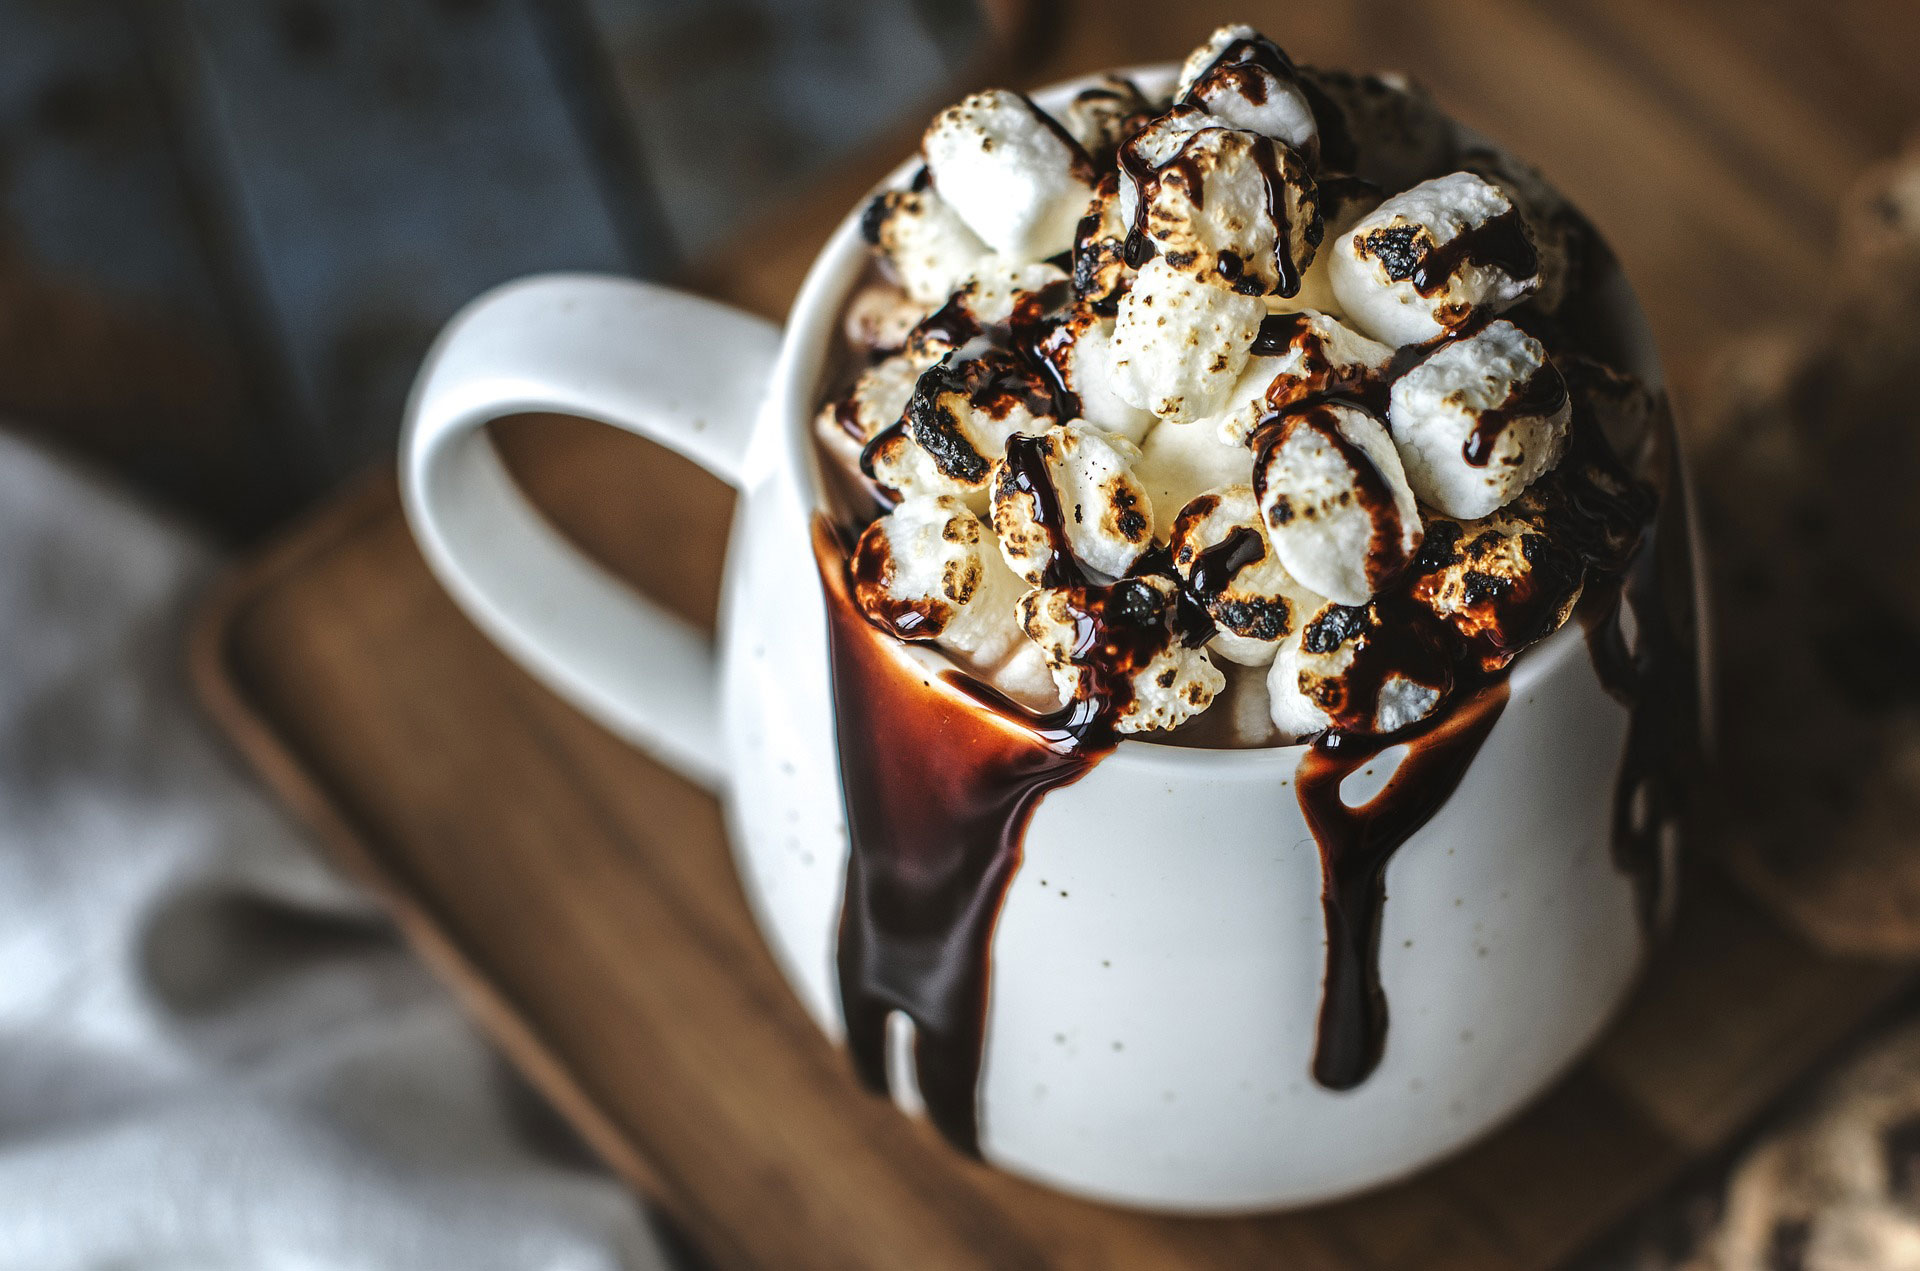 Where to get your hot chocolate fix this winter